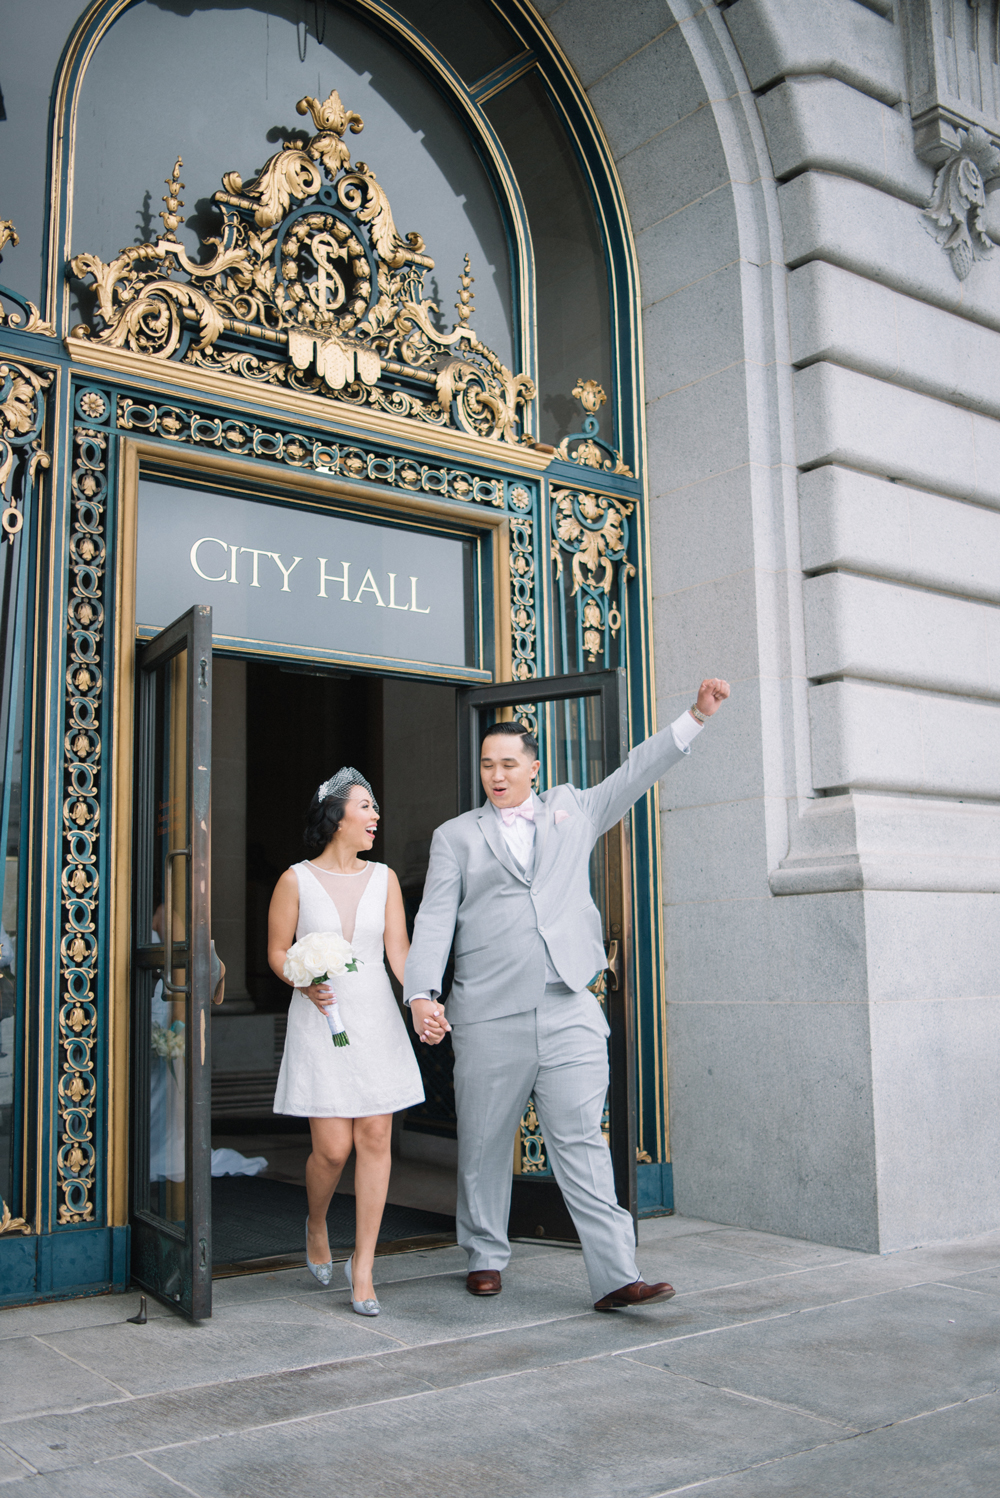 melissademata.com | San Francisco City Hall Photographer